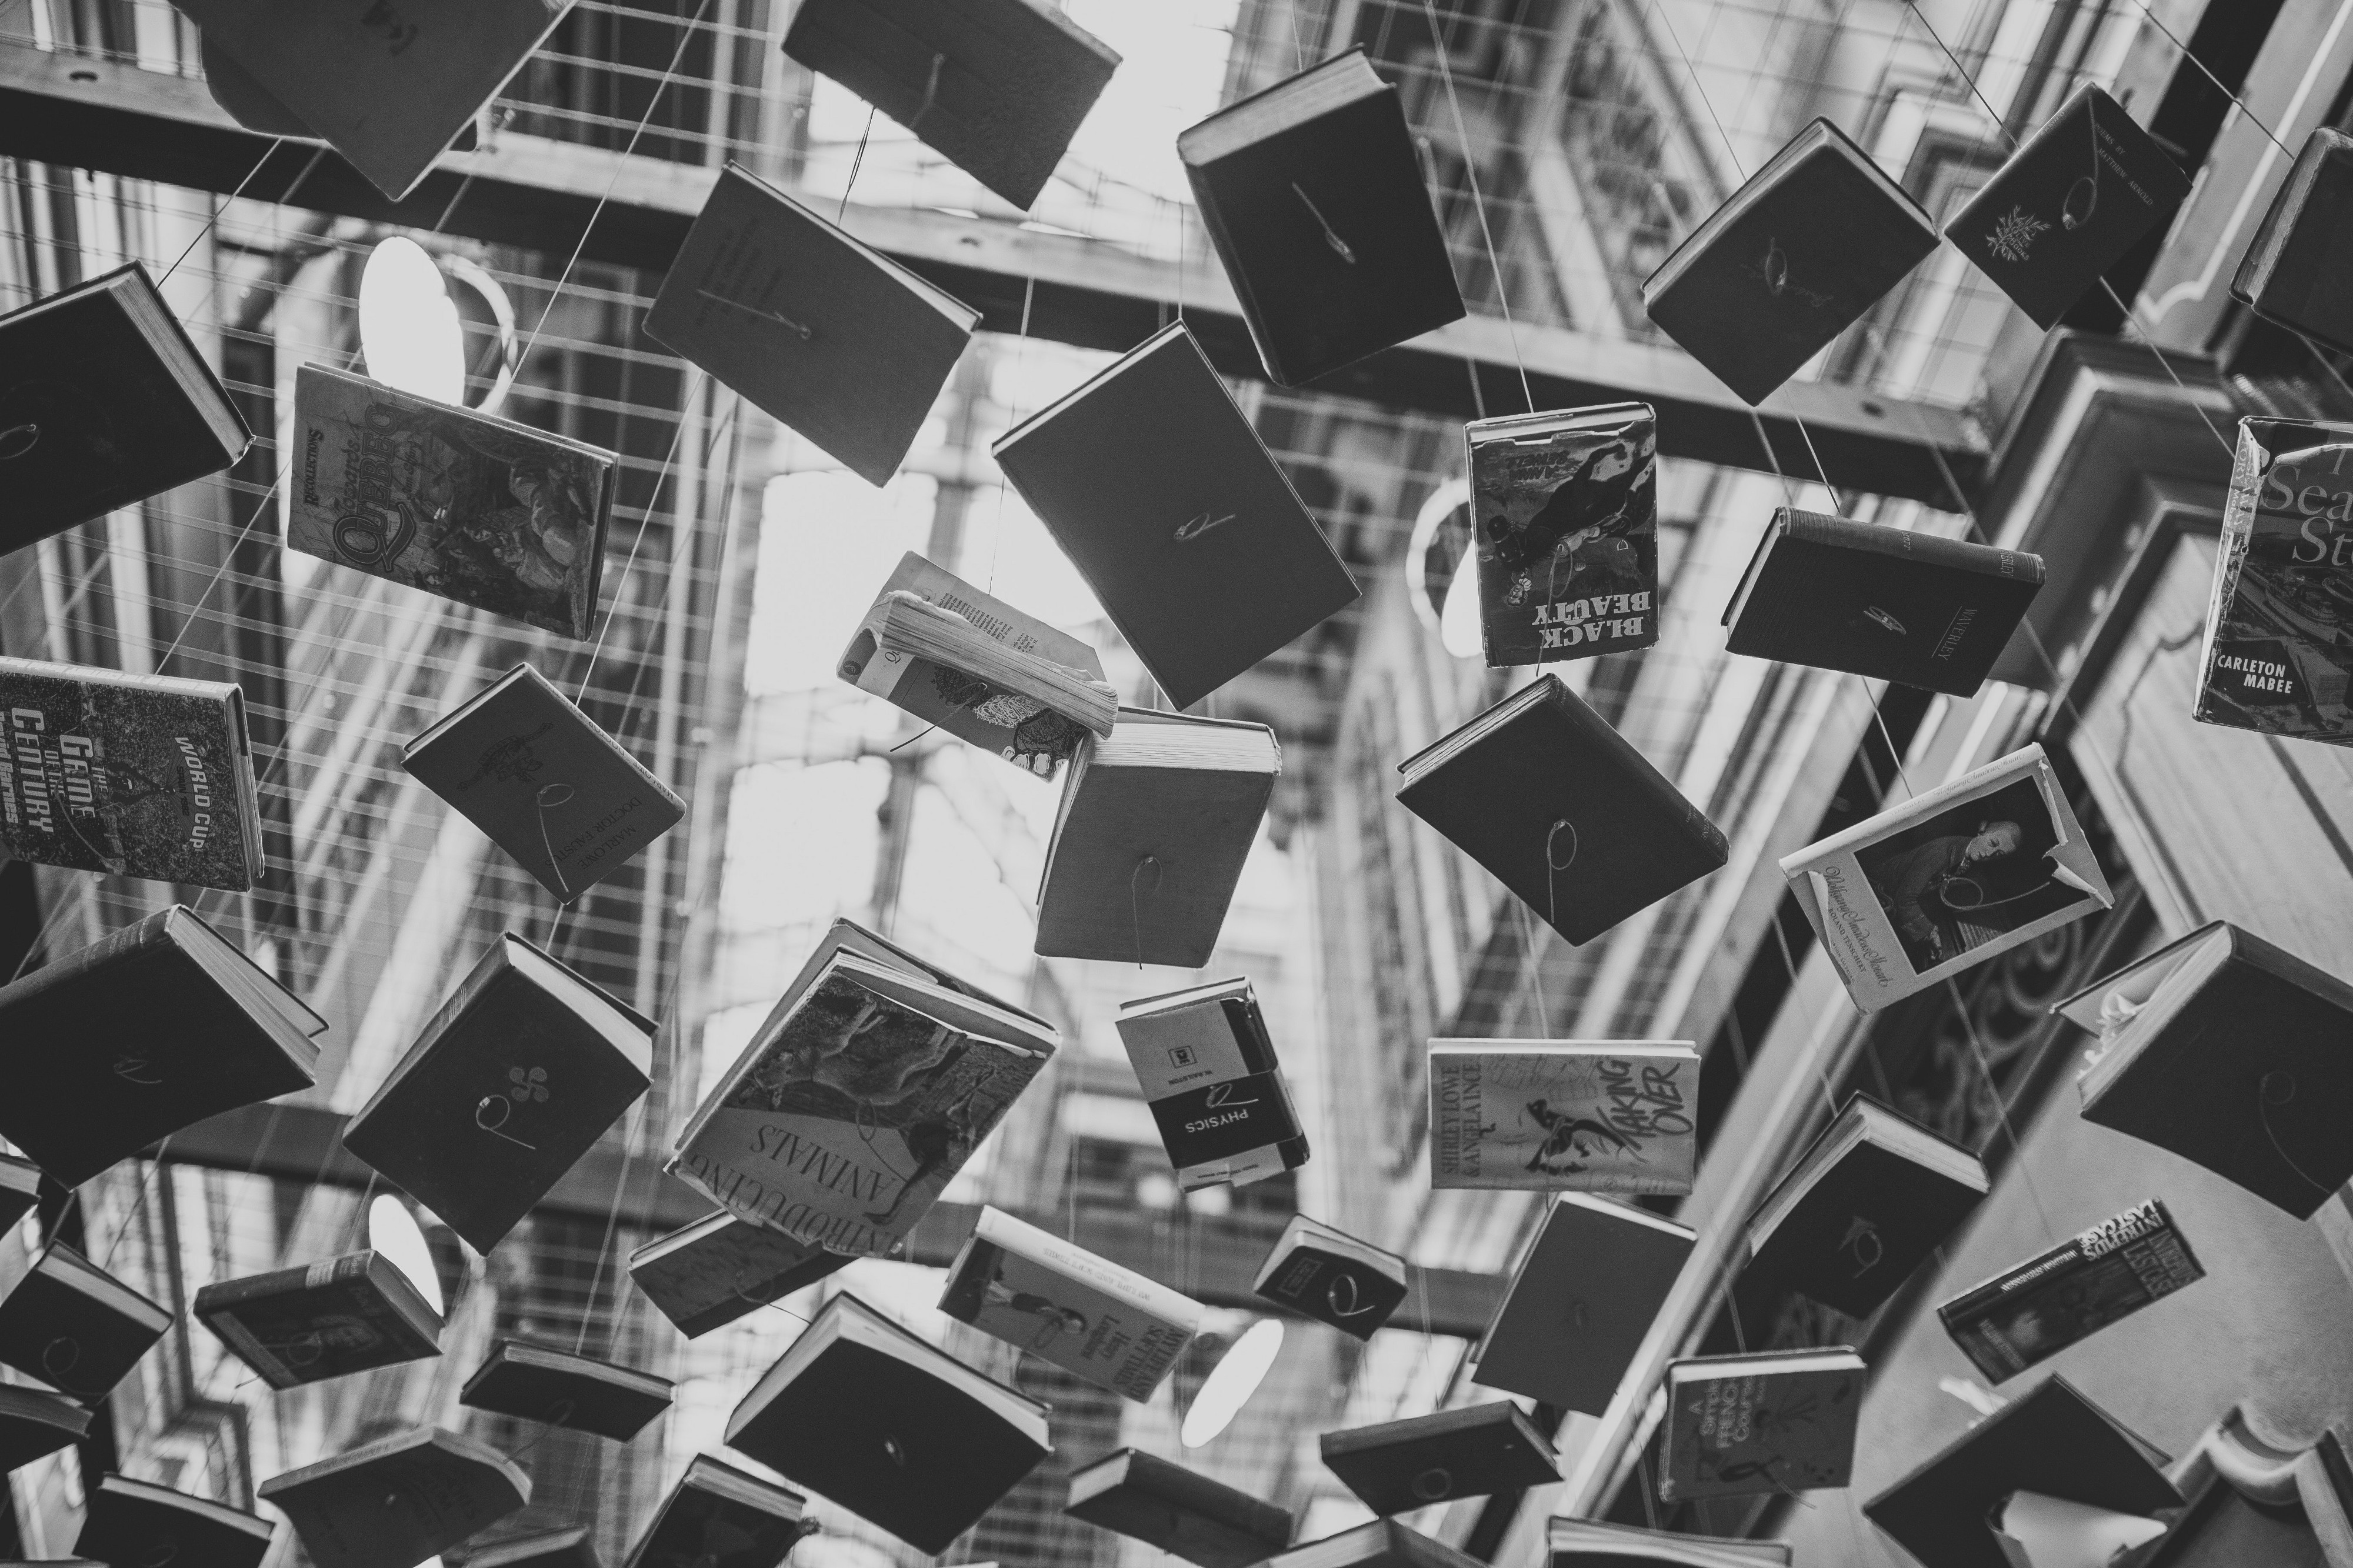 Dozens of books hanging from the ceiling.